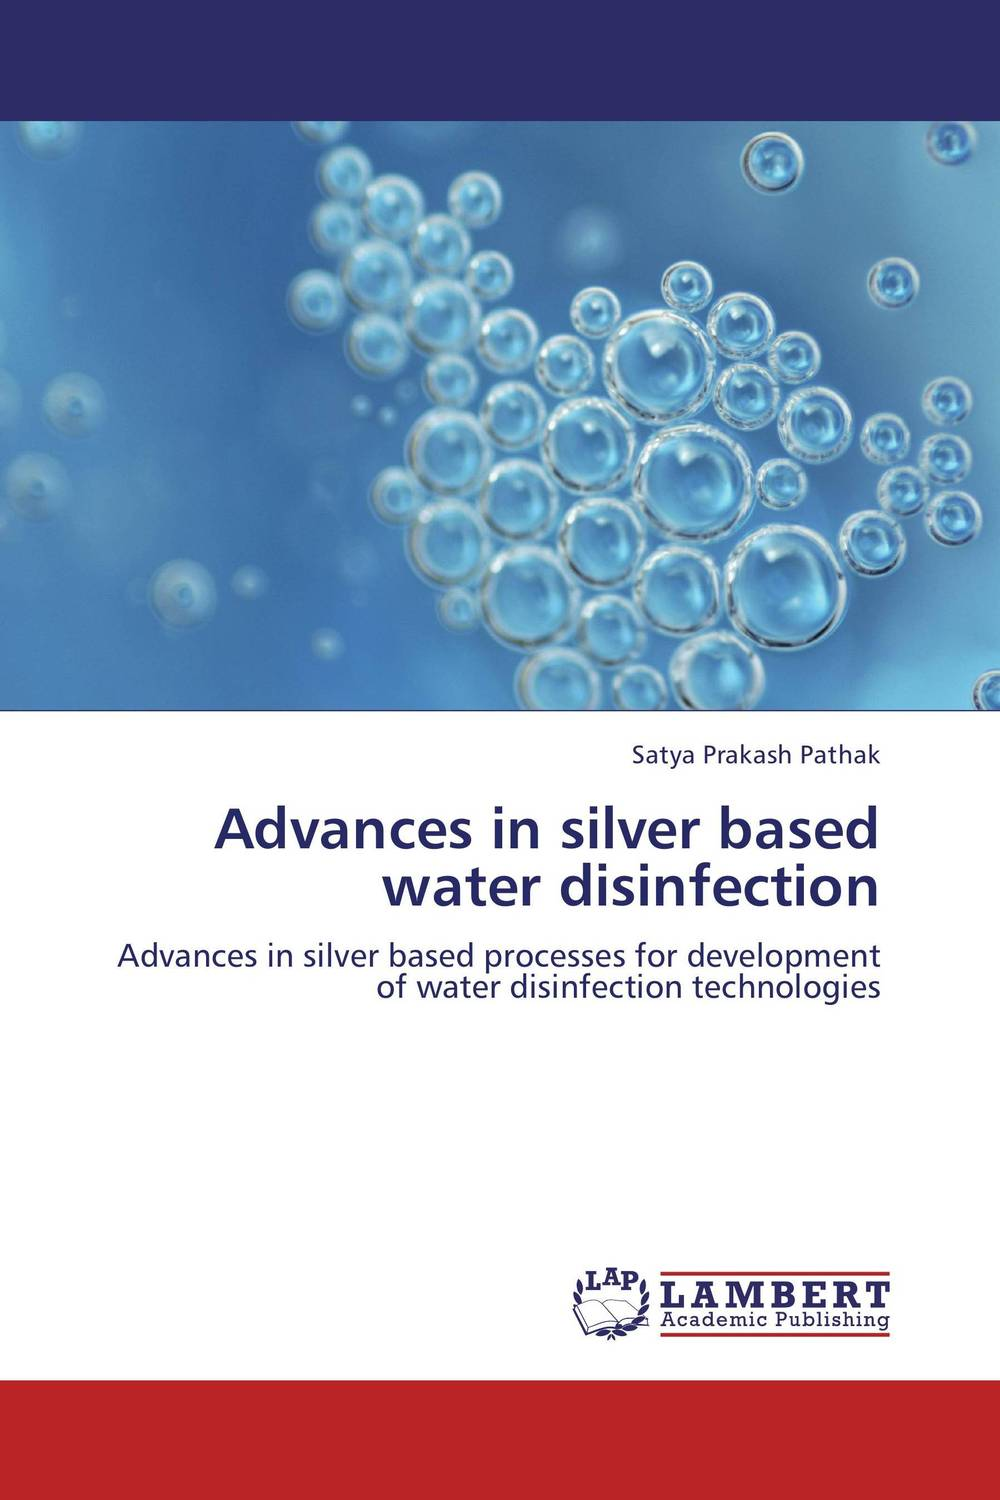 Advances in silver based water disinfection himanshu aeran and sunit kumar jurel spray disinfection of dental impressions